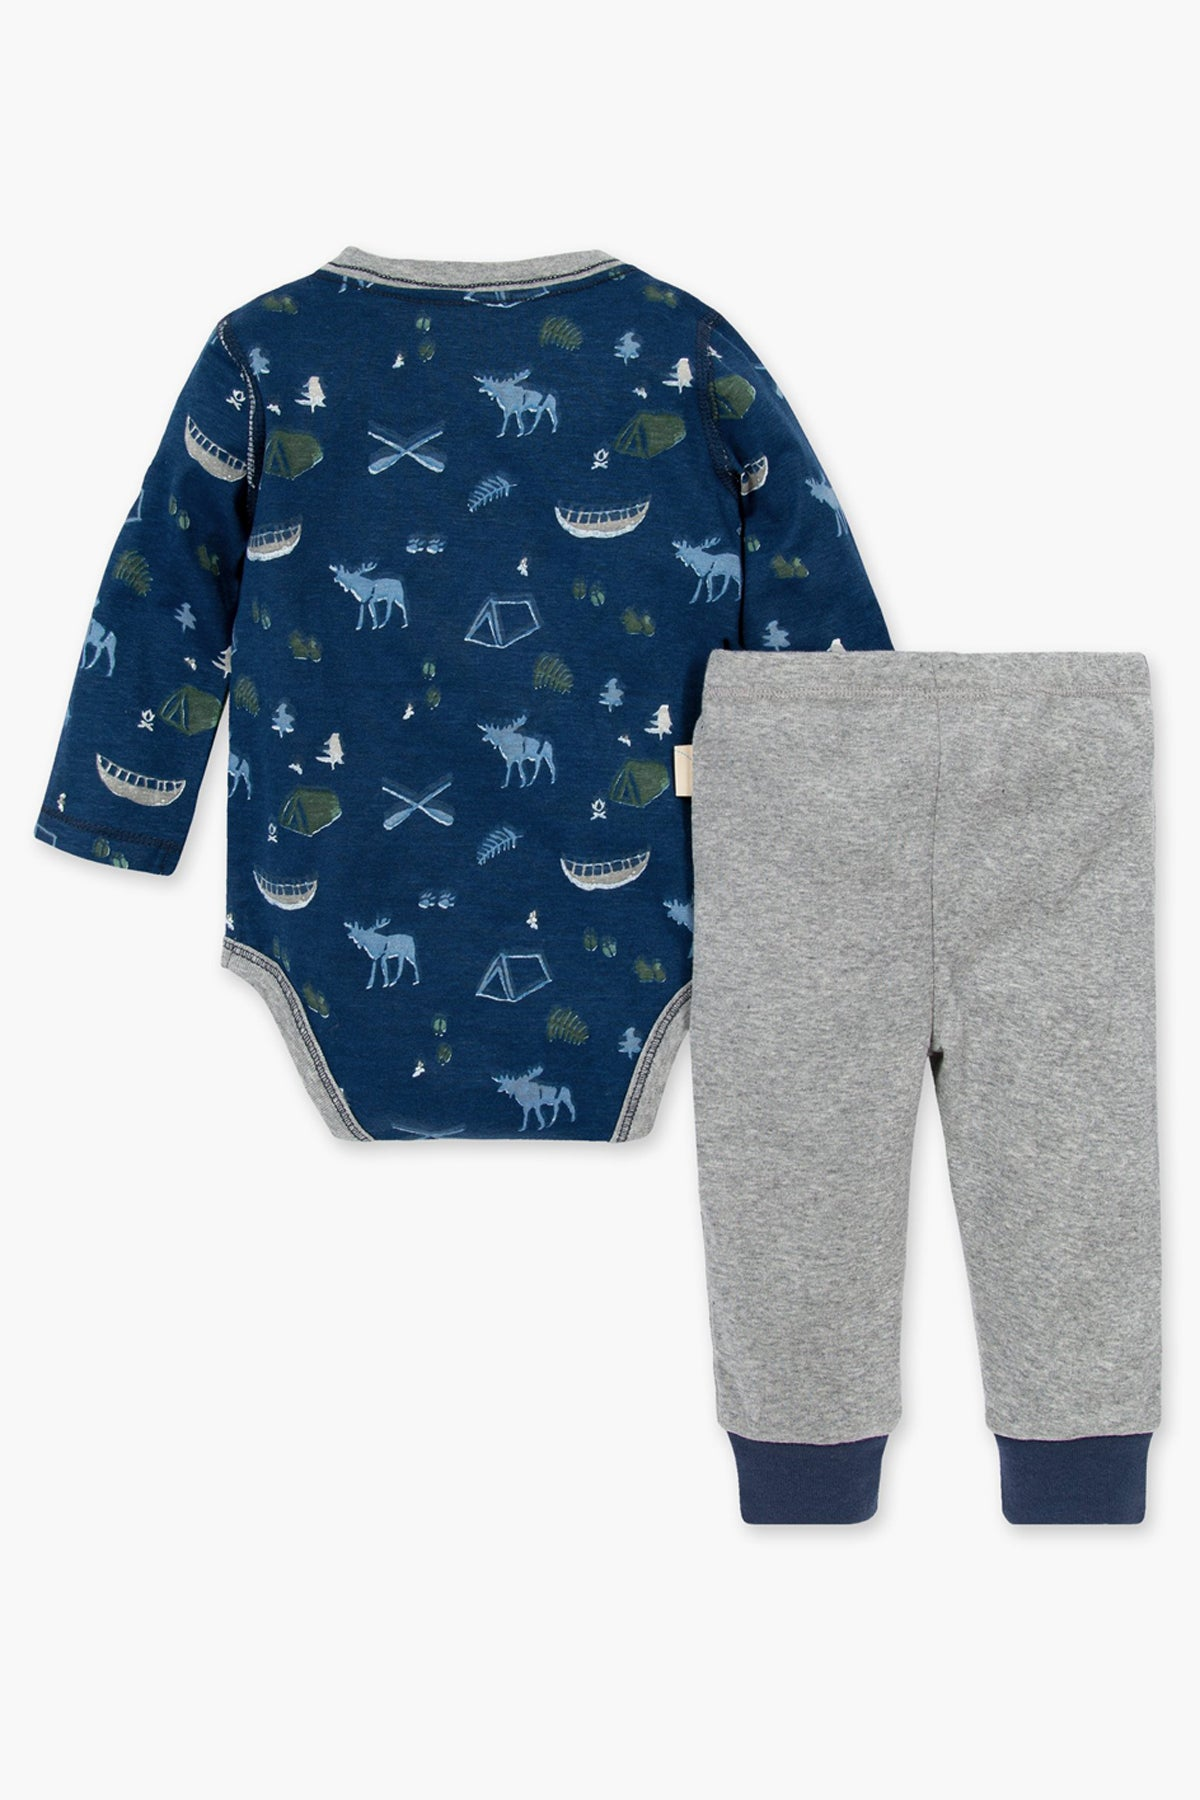 Burt's Bees Moose Trails Onesie And Baby Pants Set